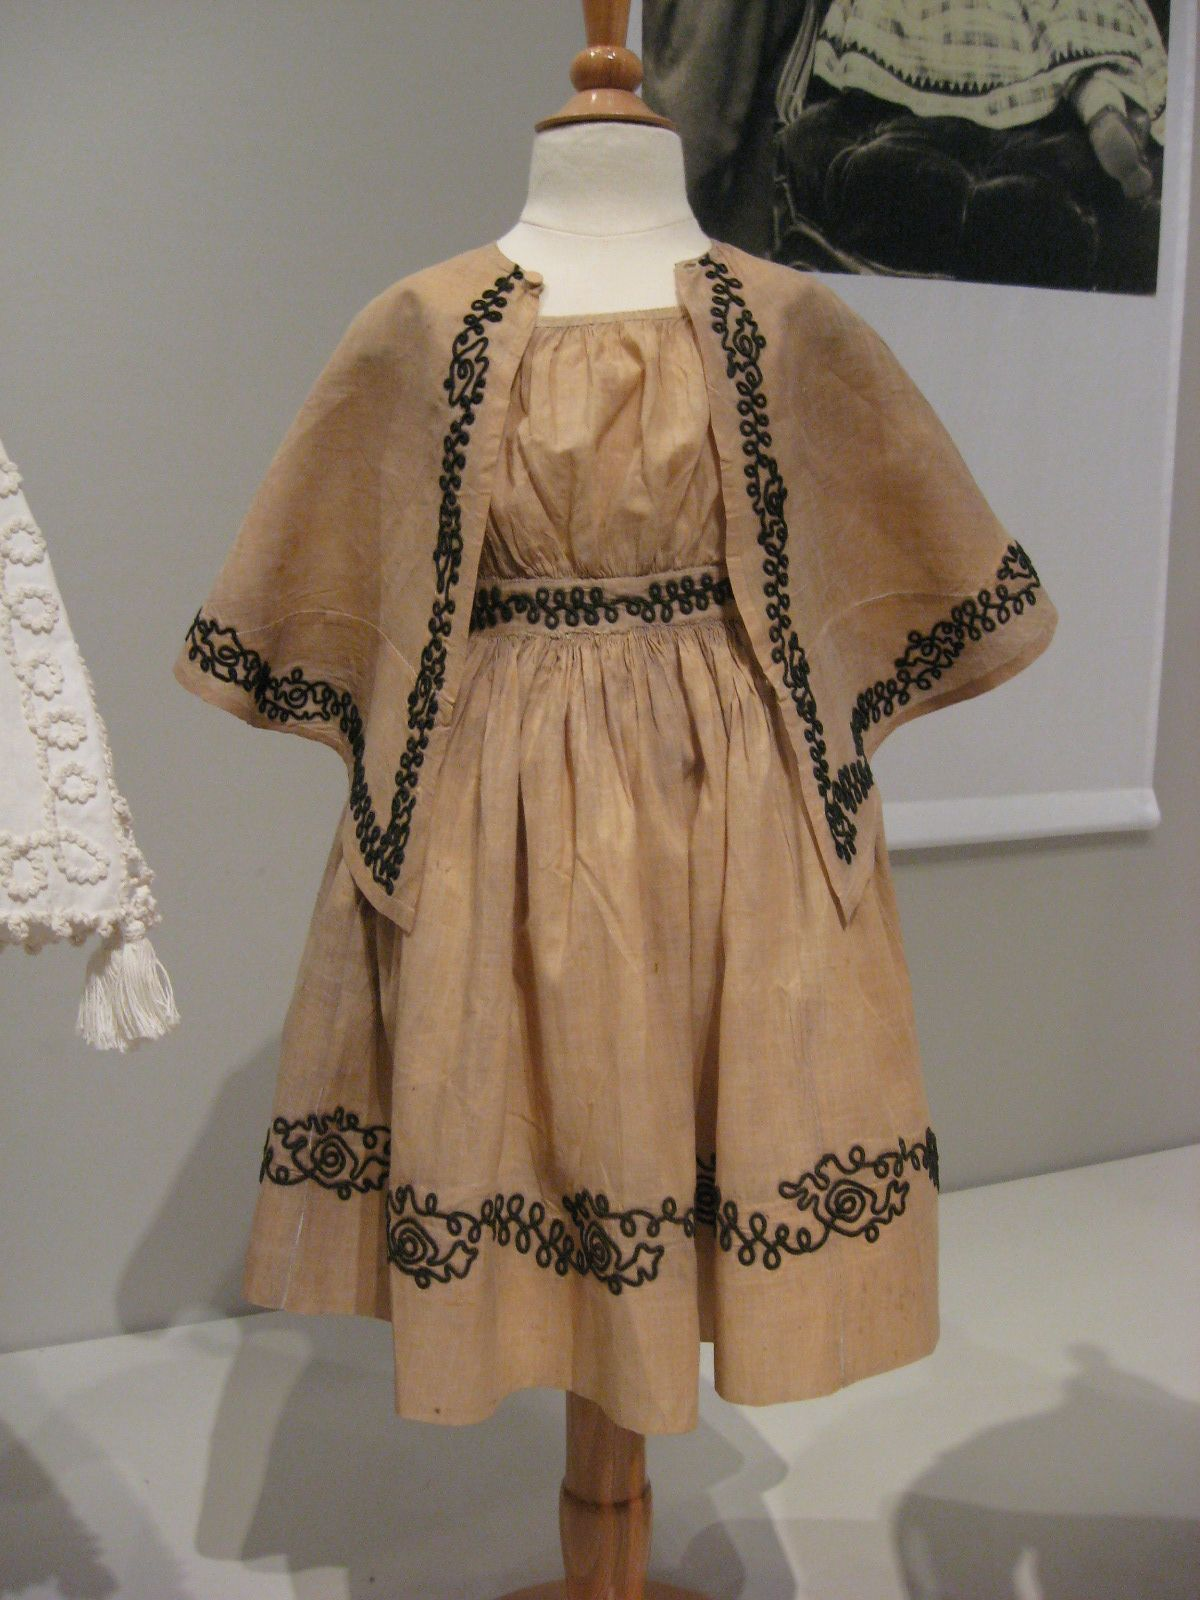 2012-08-25 KSMF - Child's dress and capelet made of tan linen with black braid trim, circa 1863.